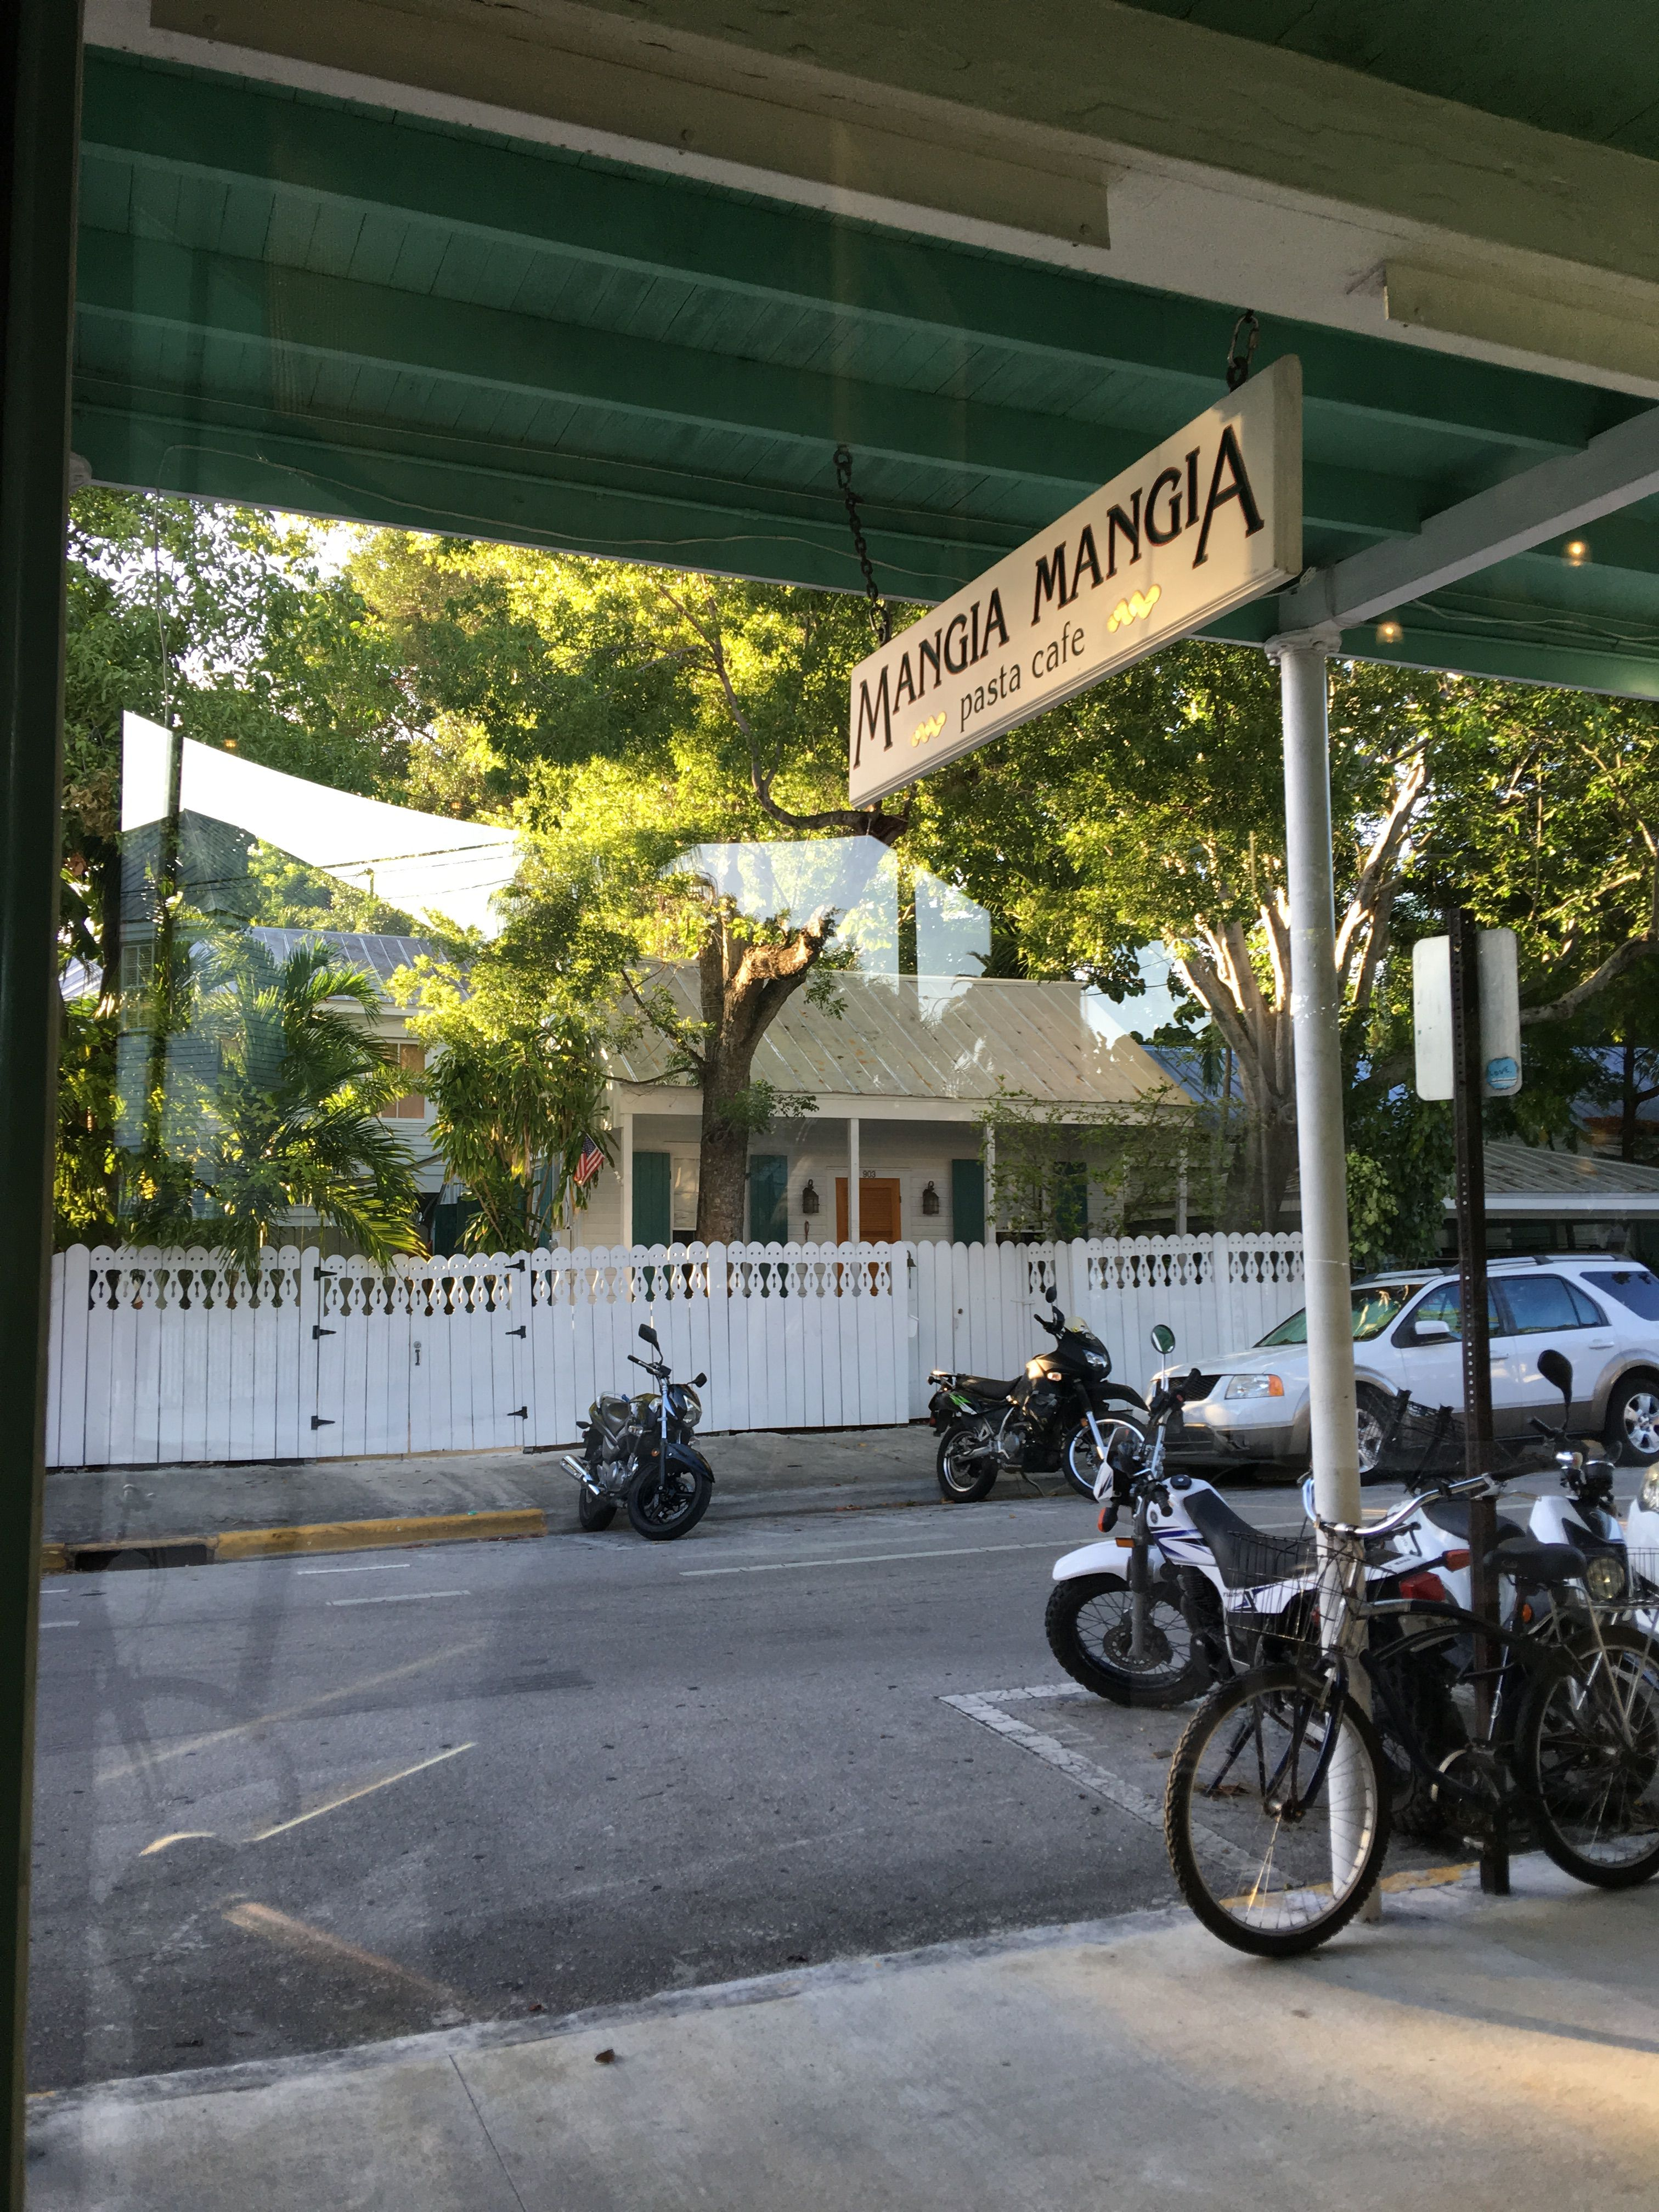 Mangia Mangia - A Must try in Key West! Chicken parm with aged Parmesan was to die for!